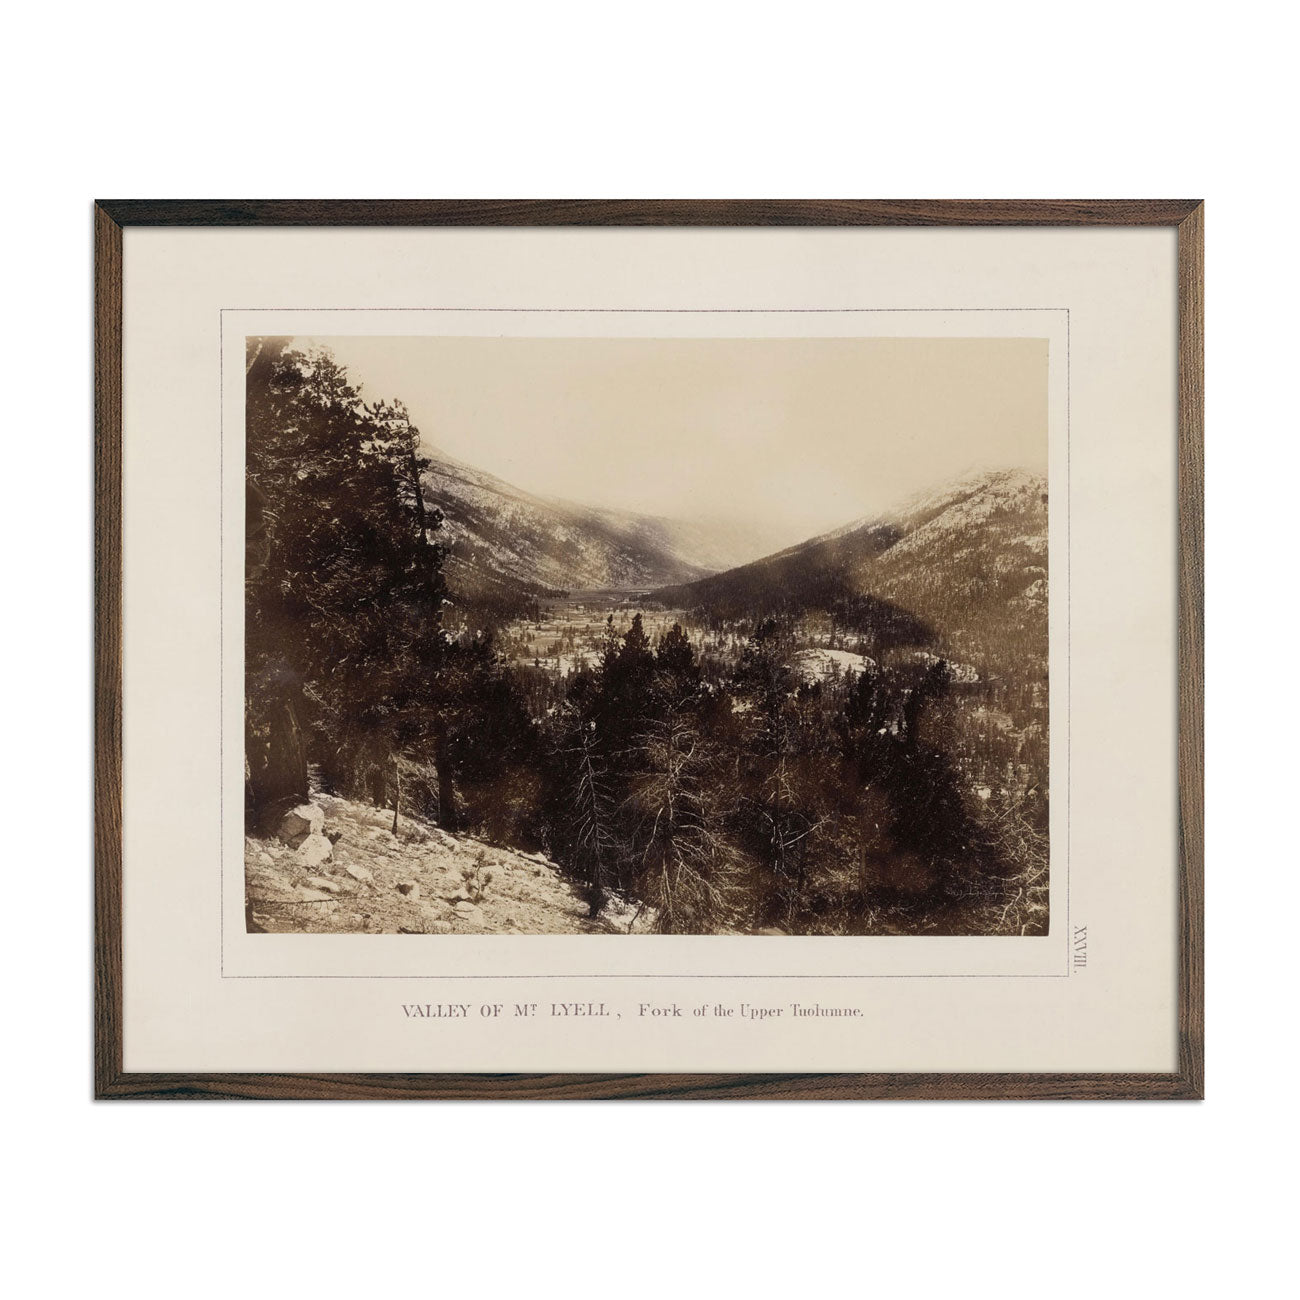 Photograph of Valley of Mt. Lyell